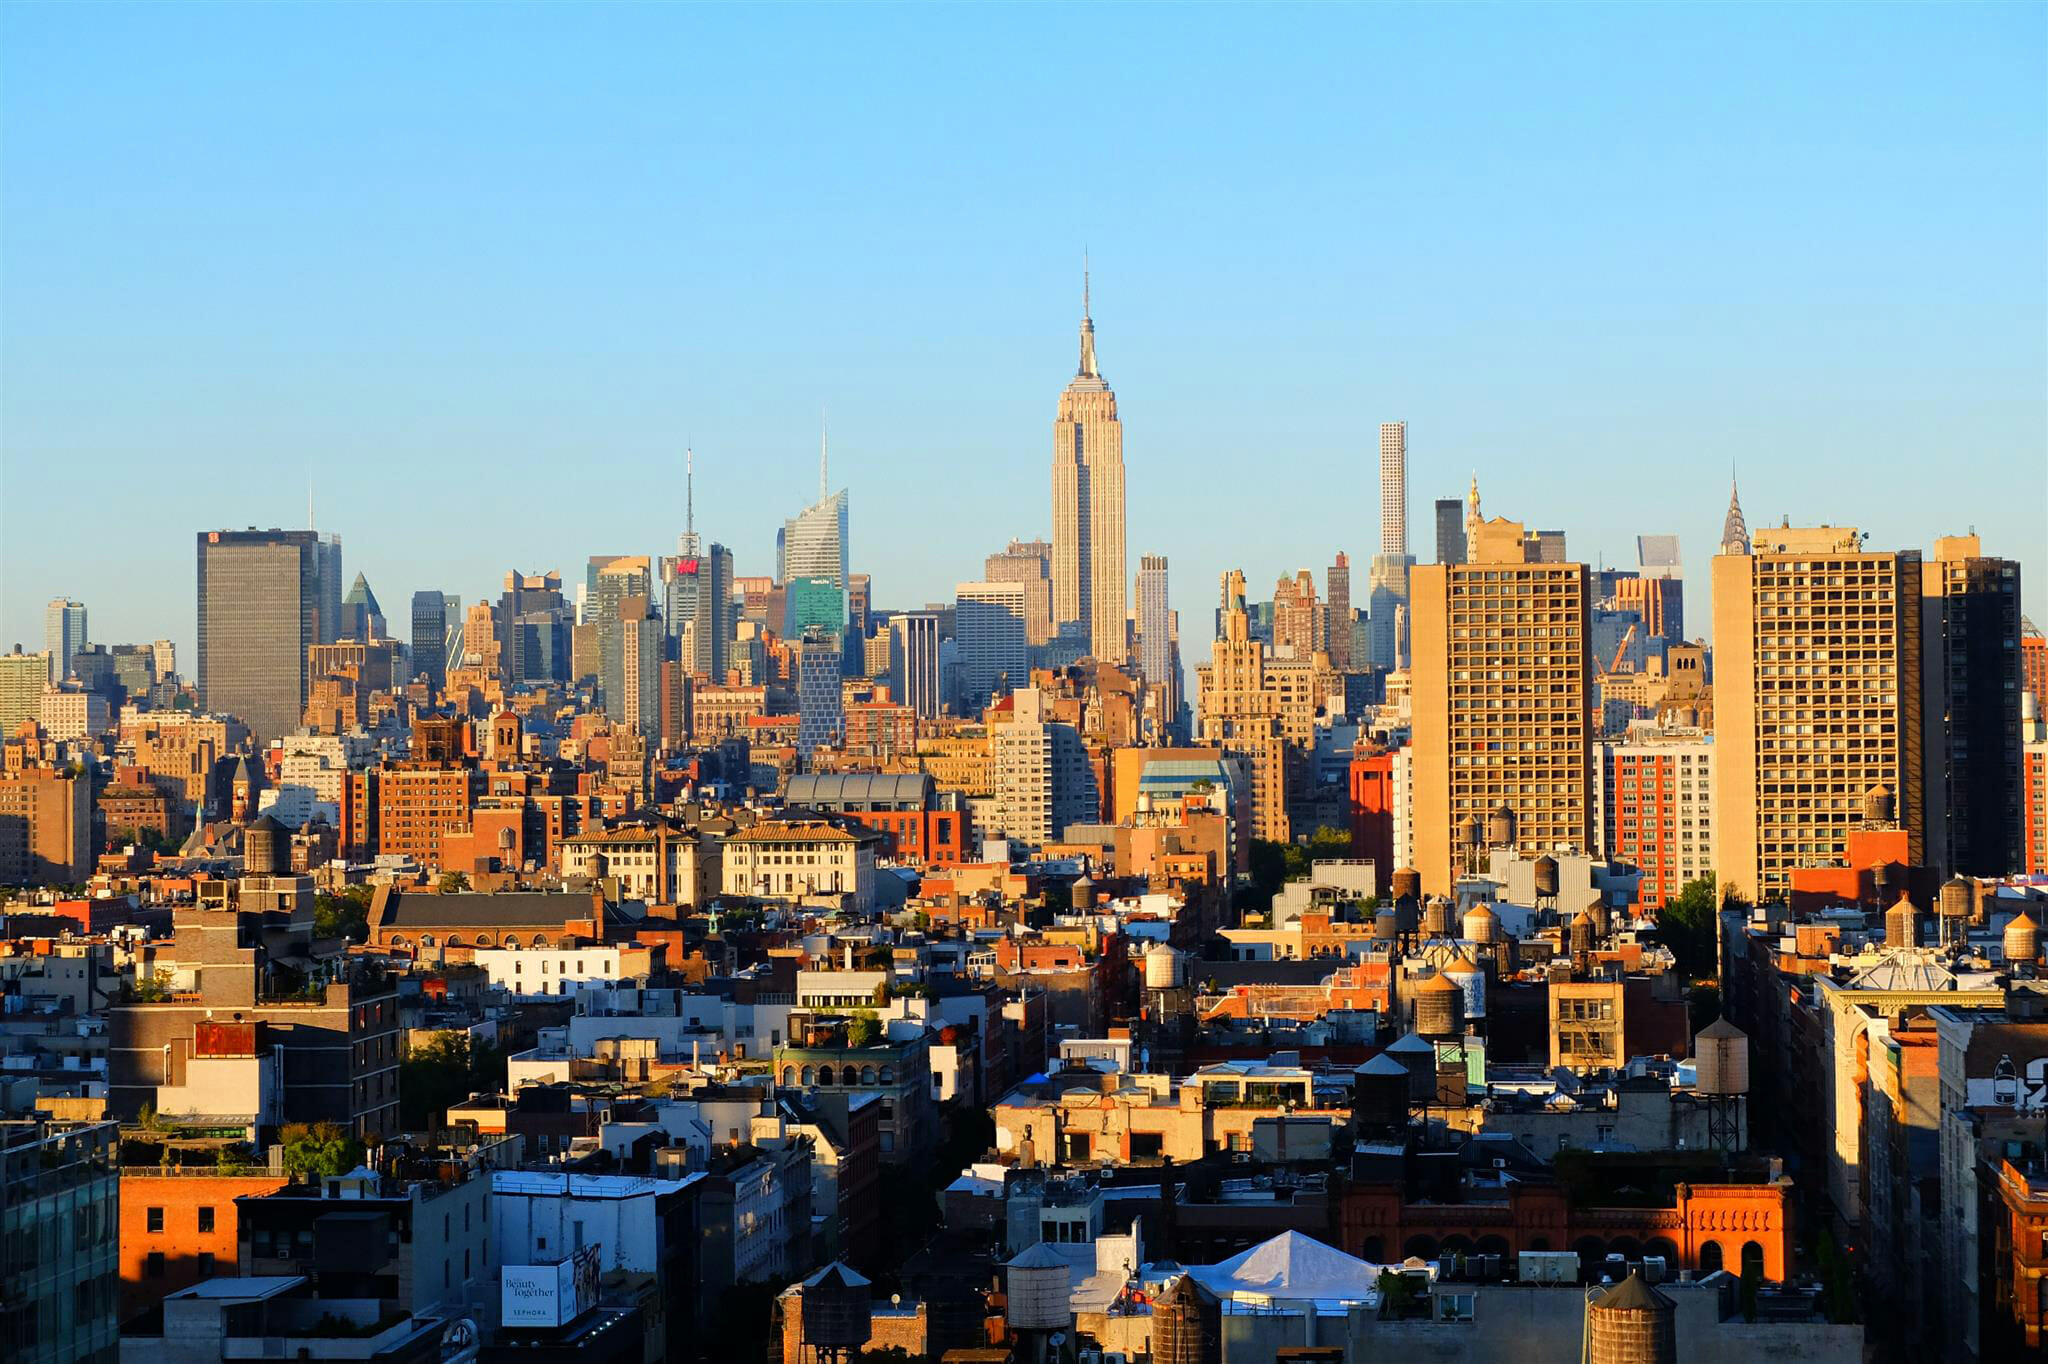 Cityscape NYC High Quality Wallpaper